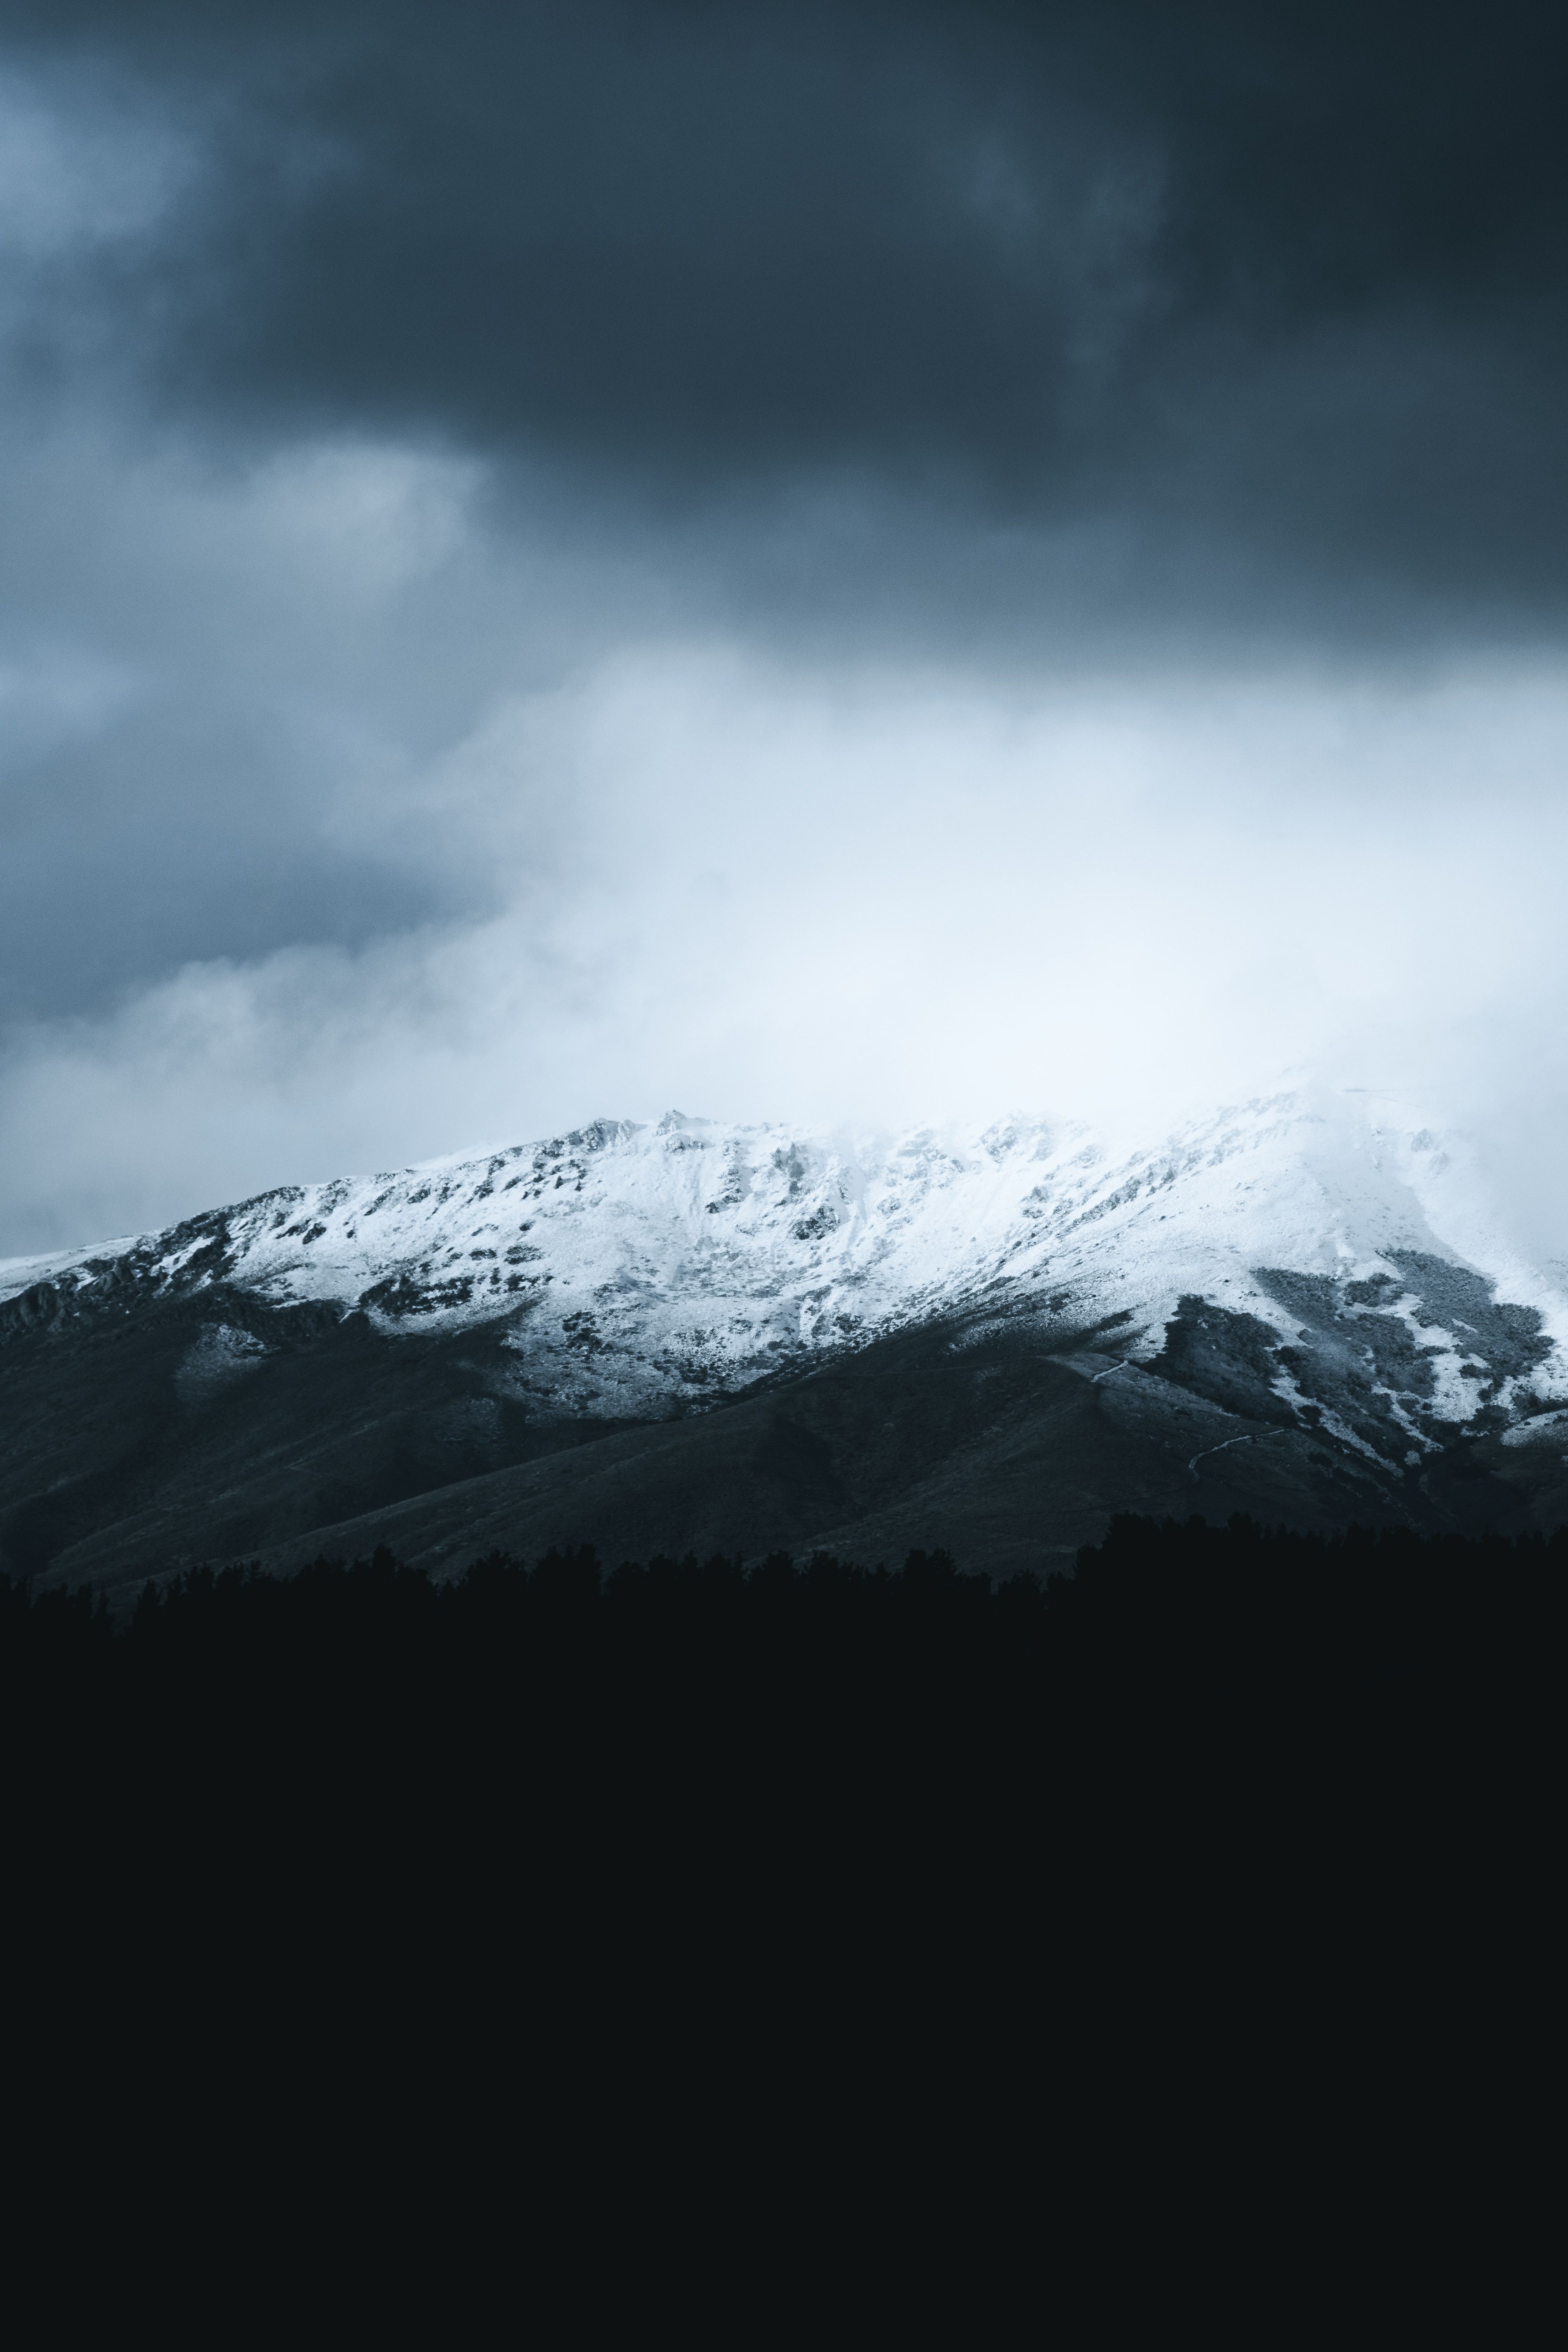 Snow Mountain Cloud Cloudy Scenery Wallpaper Background Wallpaper